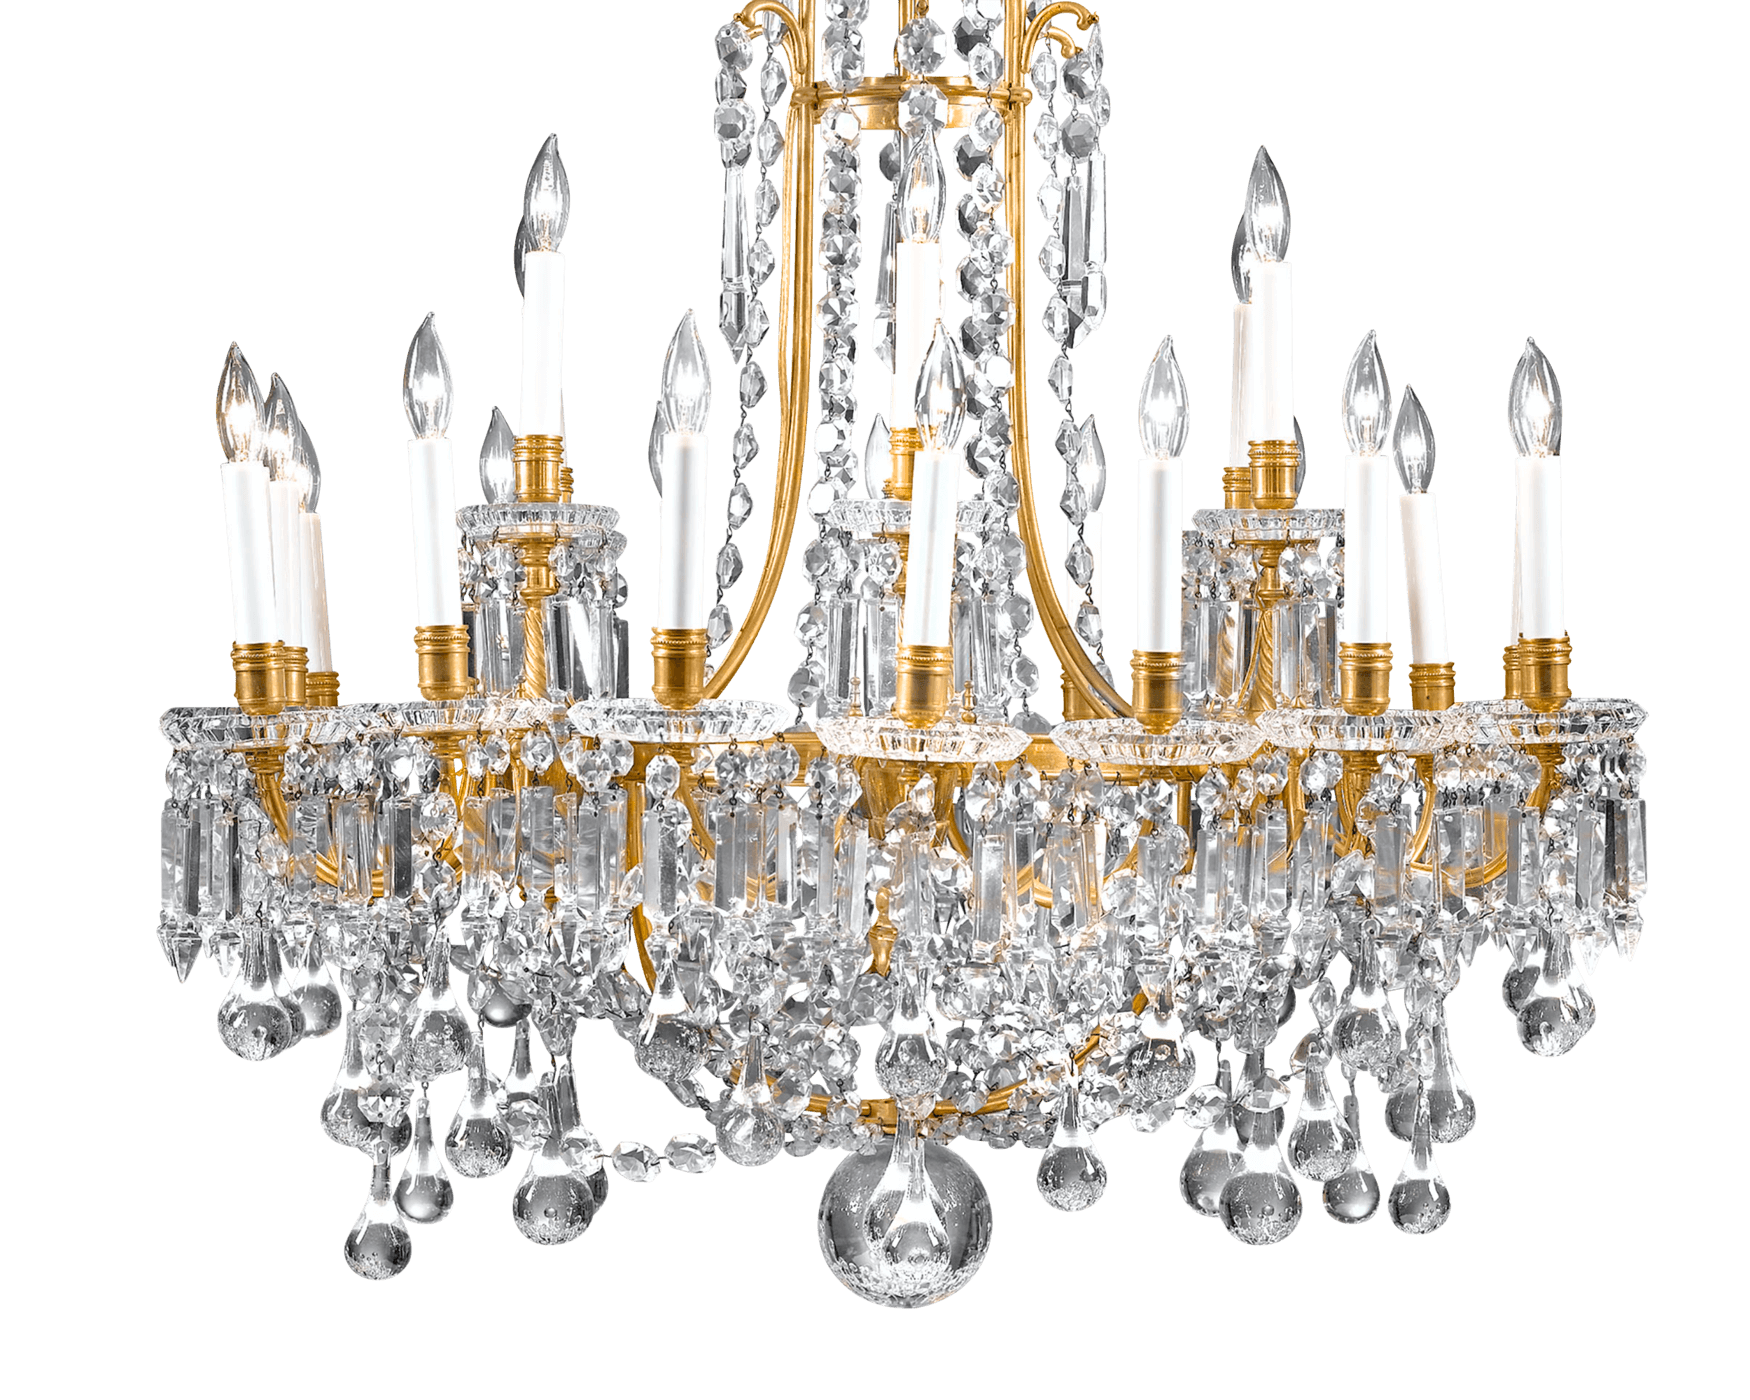 Transparent picture mart. Chandelier png jpg black and white